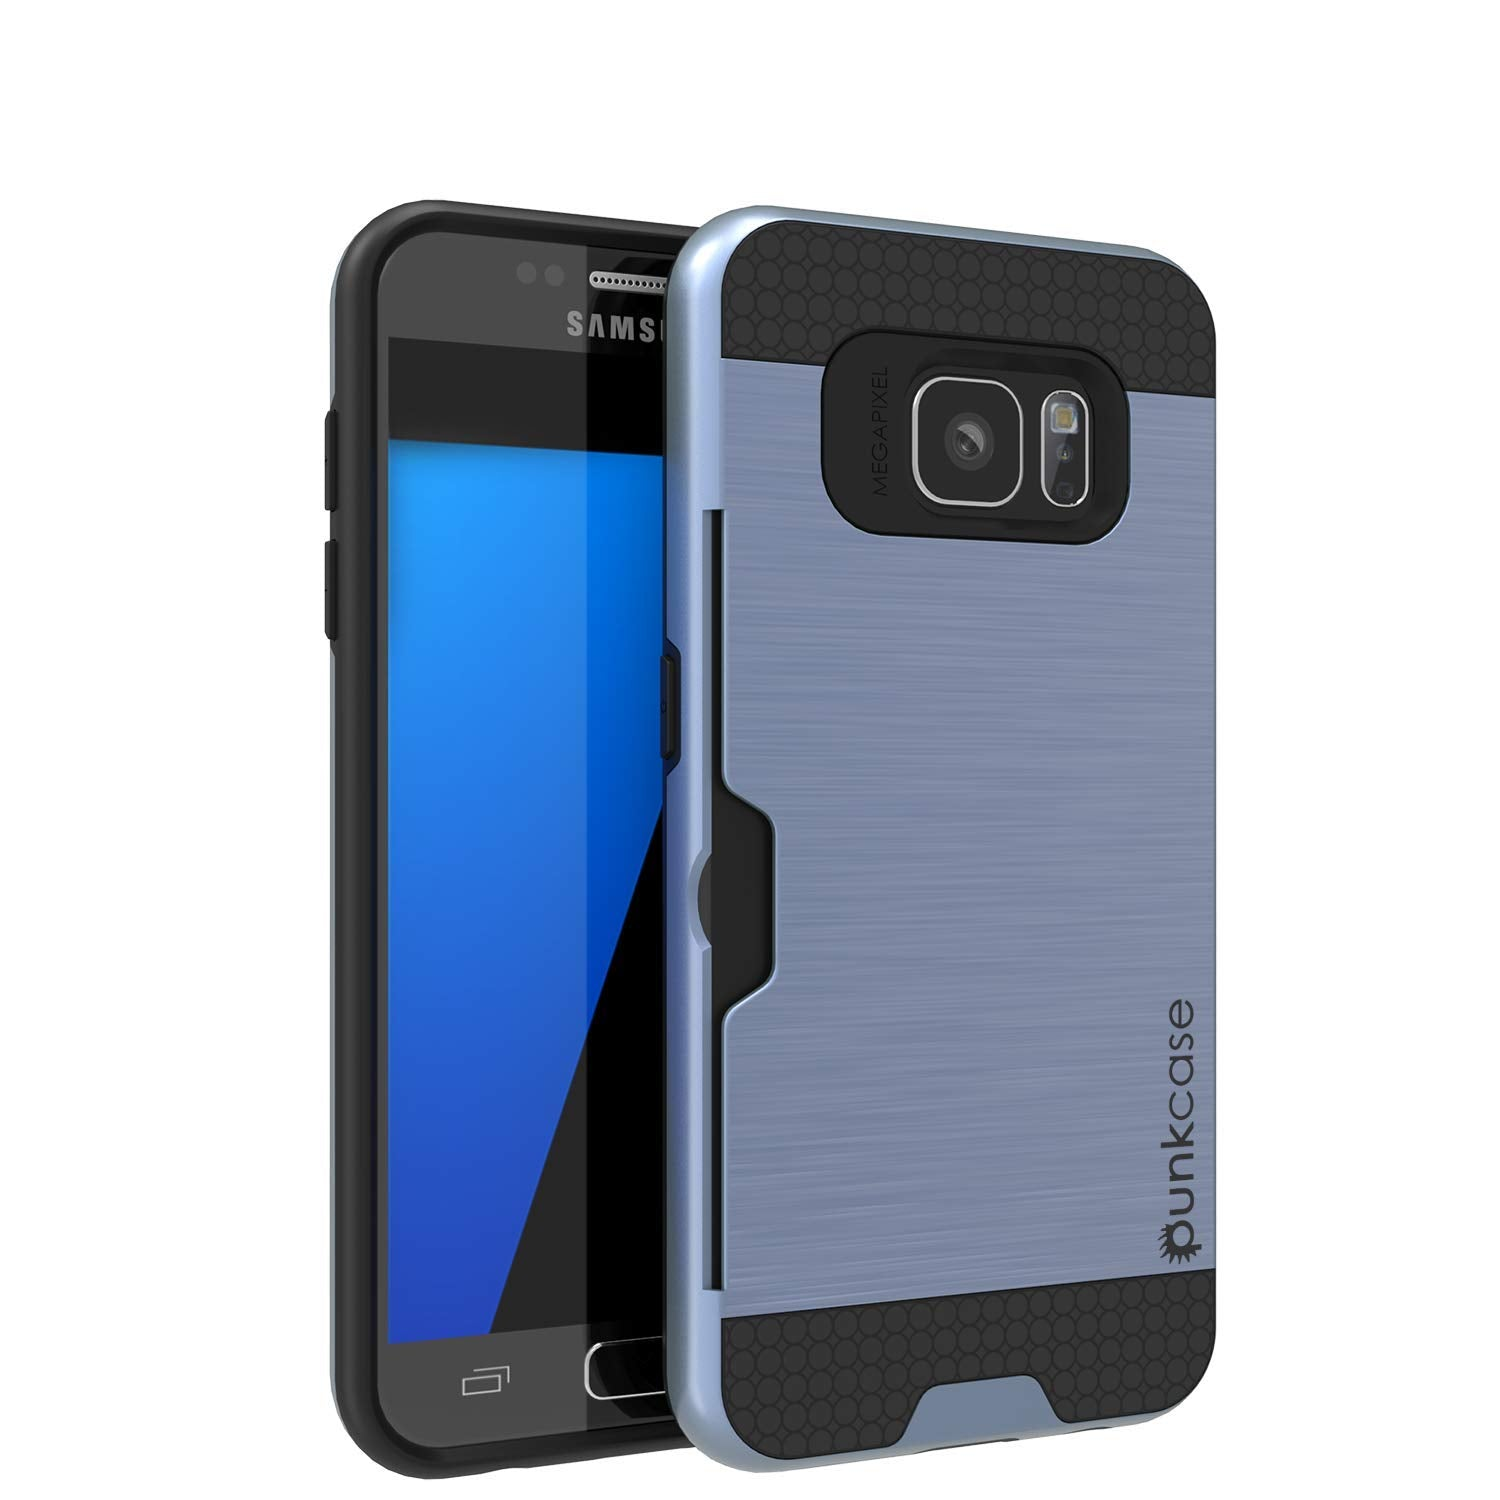 Galaxy S7+ Plus Dual-Layer Ultra Screen Protector Case W/ Card Slot [Navy]